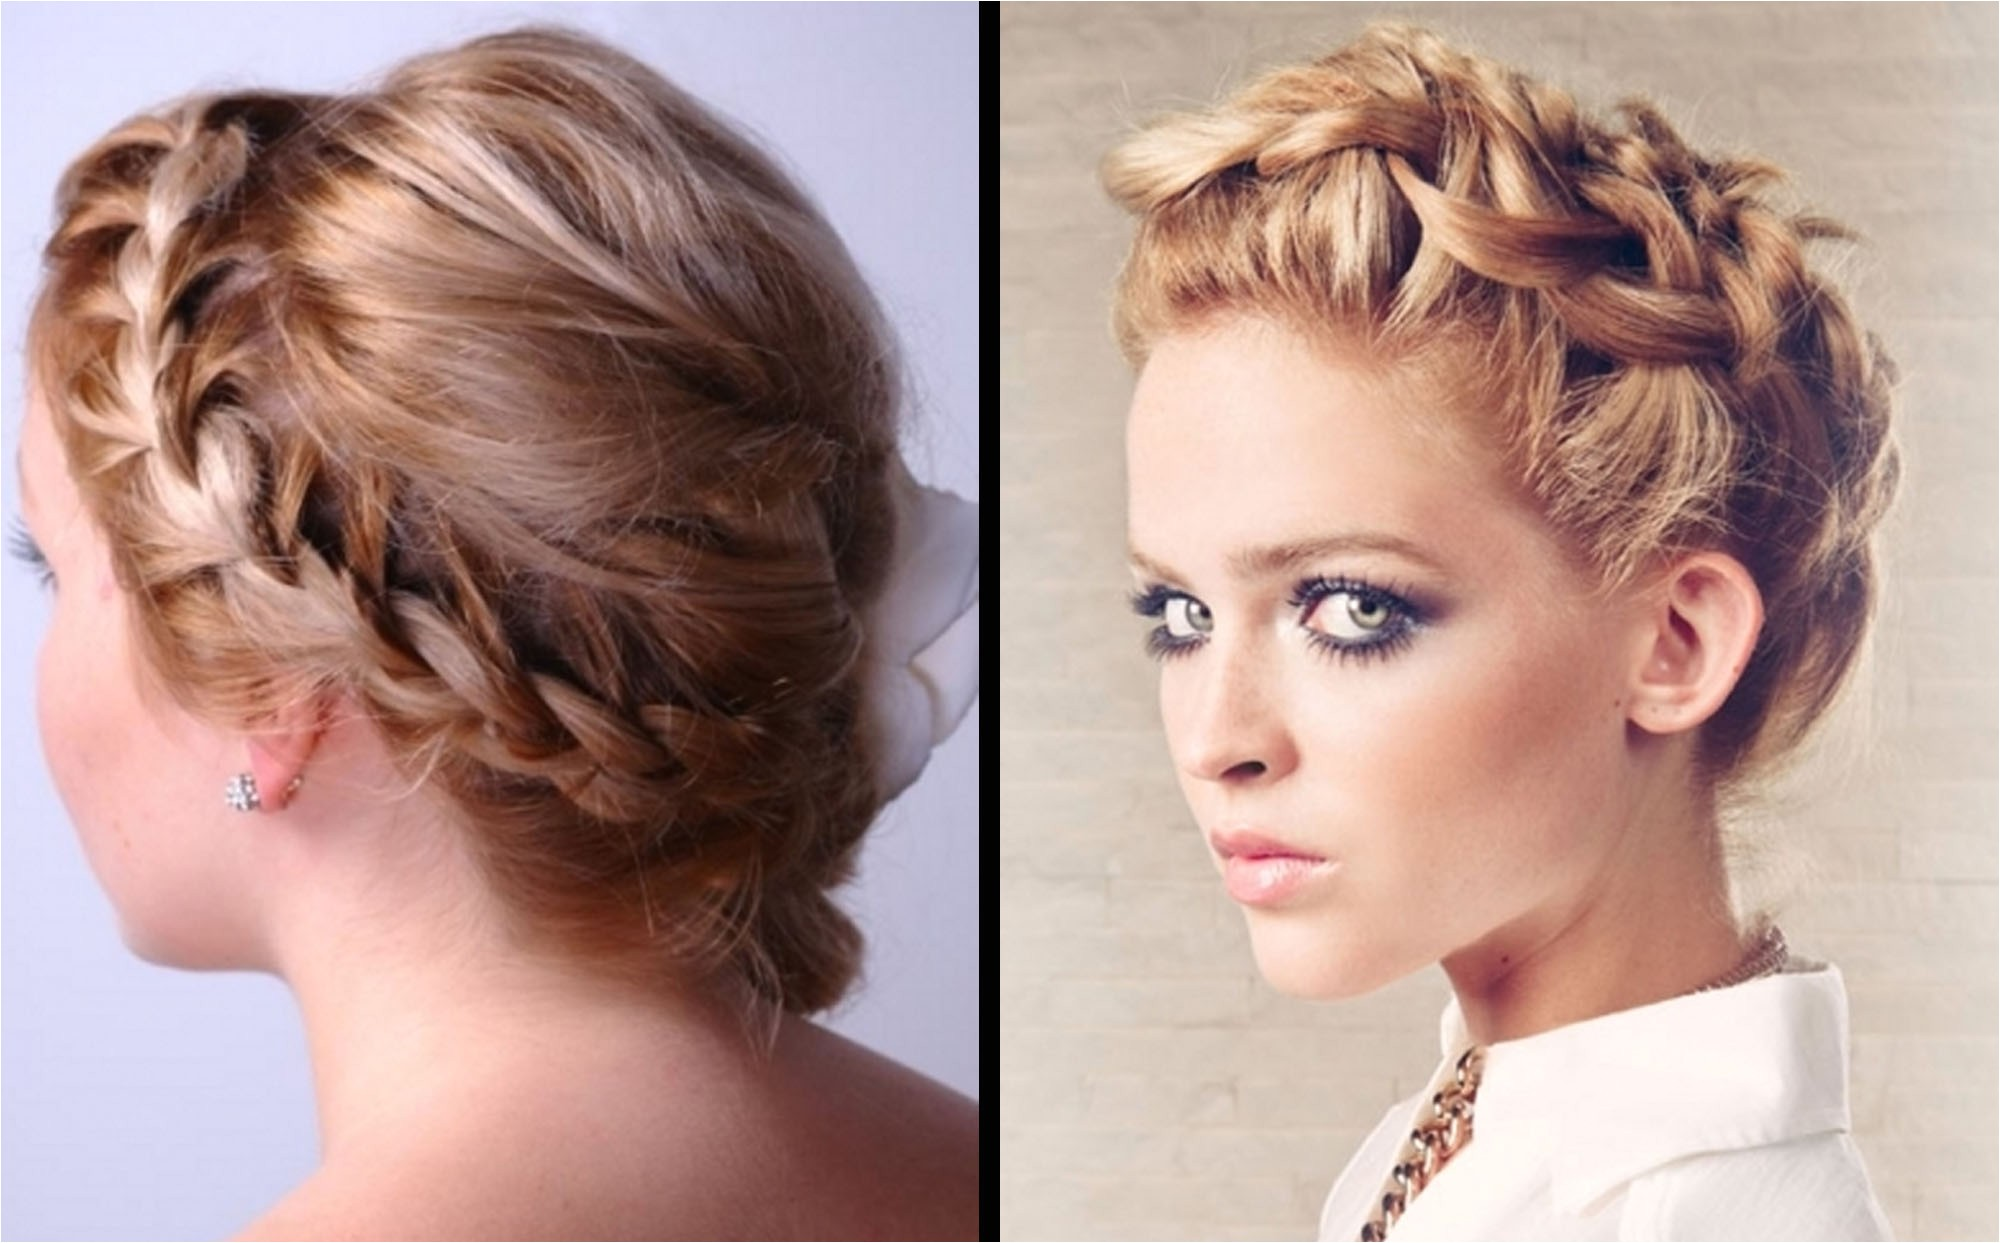 formal updo hairstyle braided updo hairstyles beautiful hairstyles formal braided